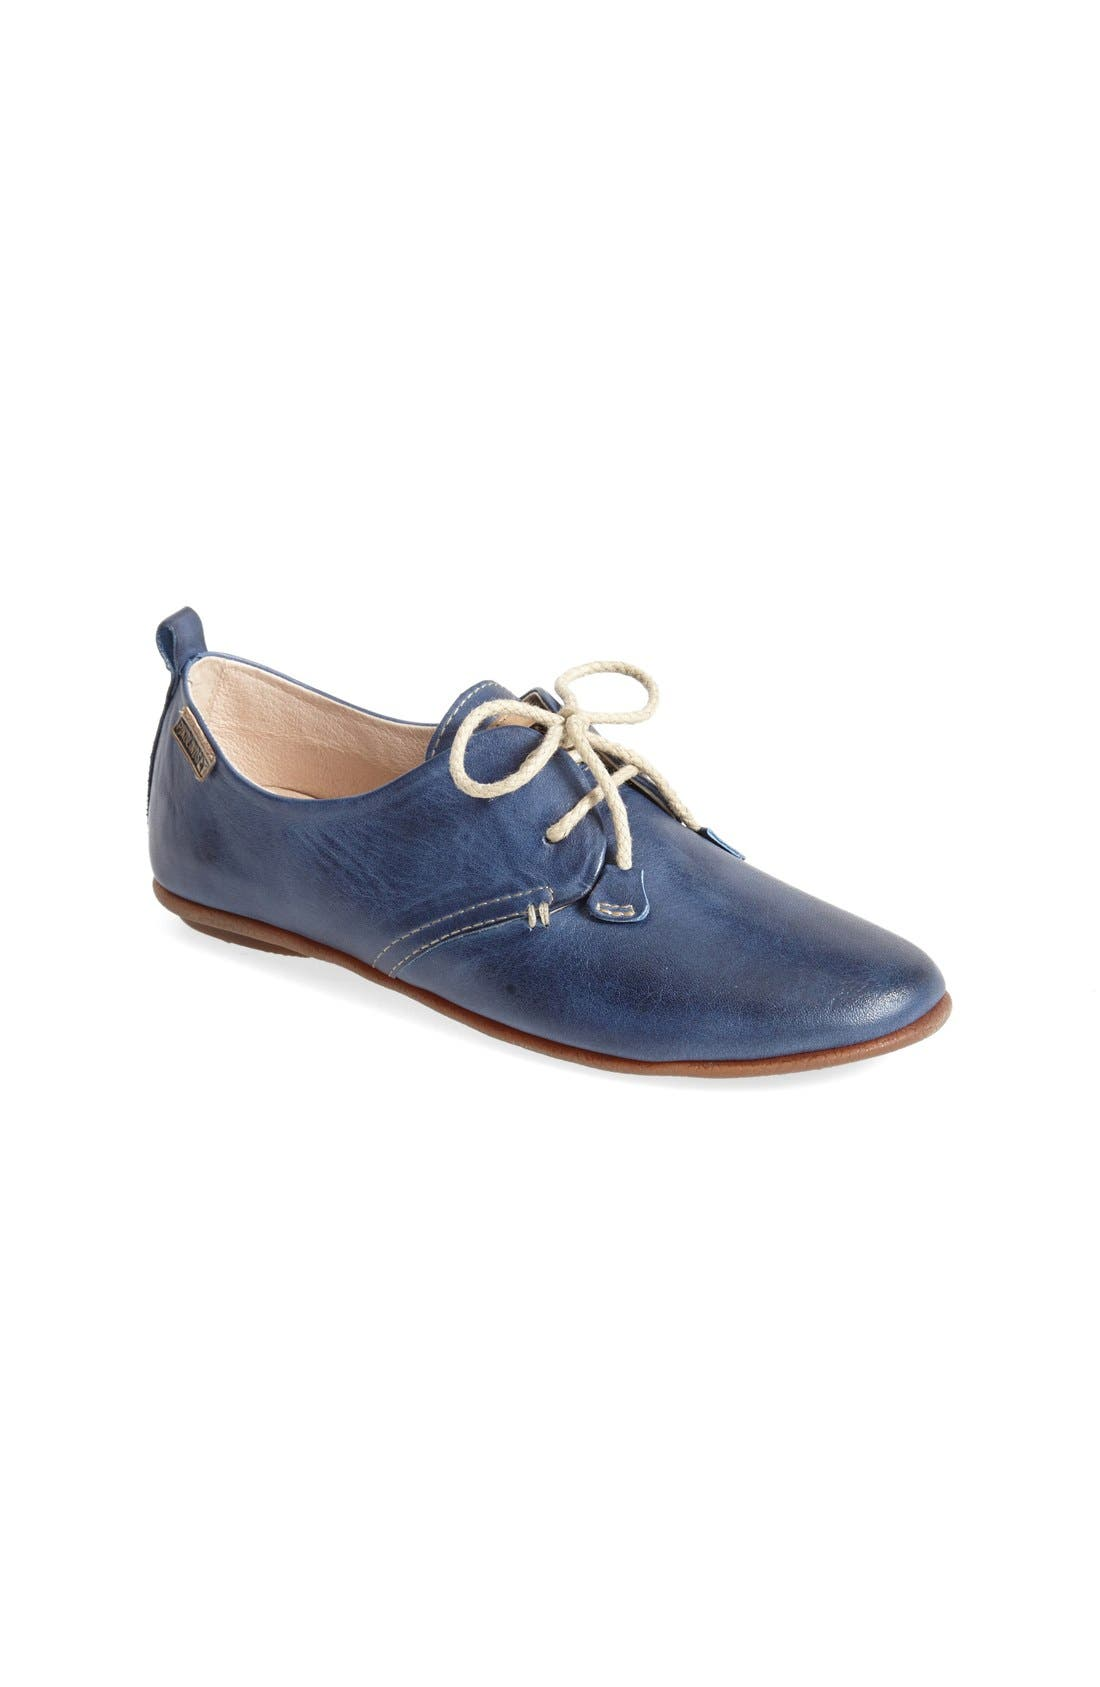 Main Image - PIKOLINOS Calabria Derby Flat (Women)